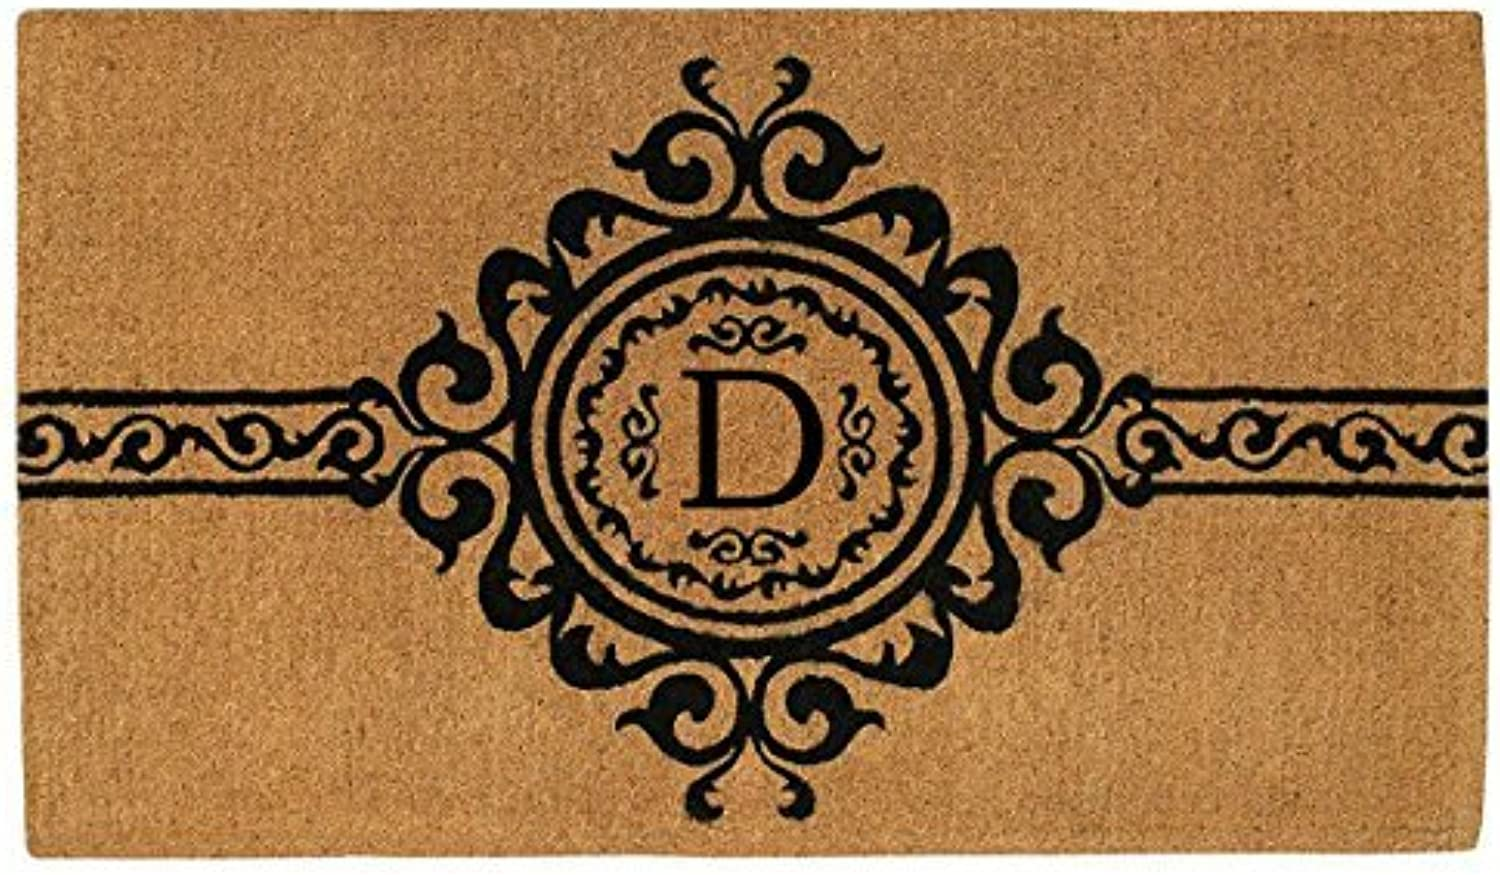 Home & More 180072436D Garbo 2' X 3' Extra-thick Monogrammed Doormat (Letter D)